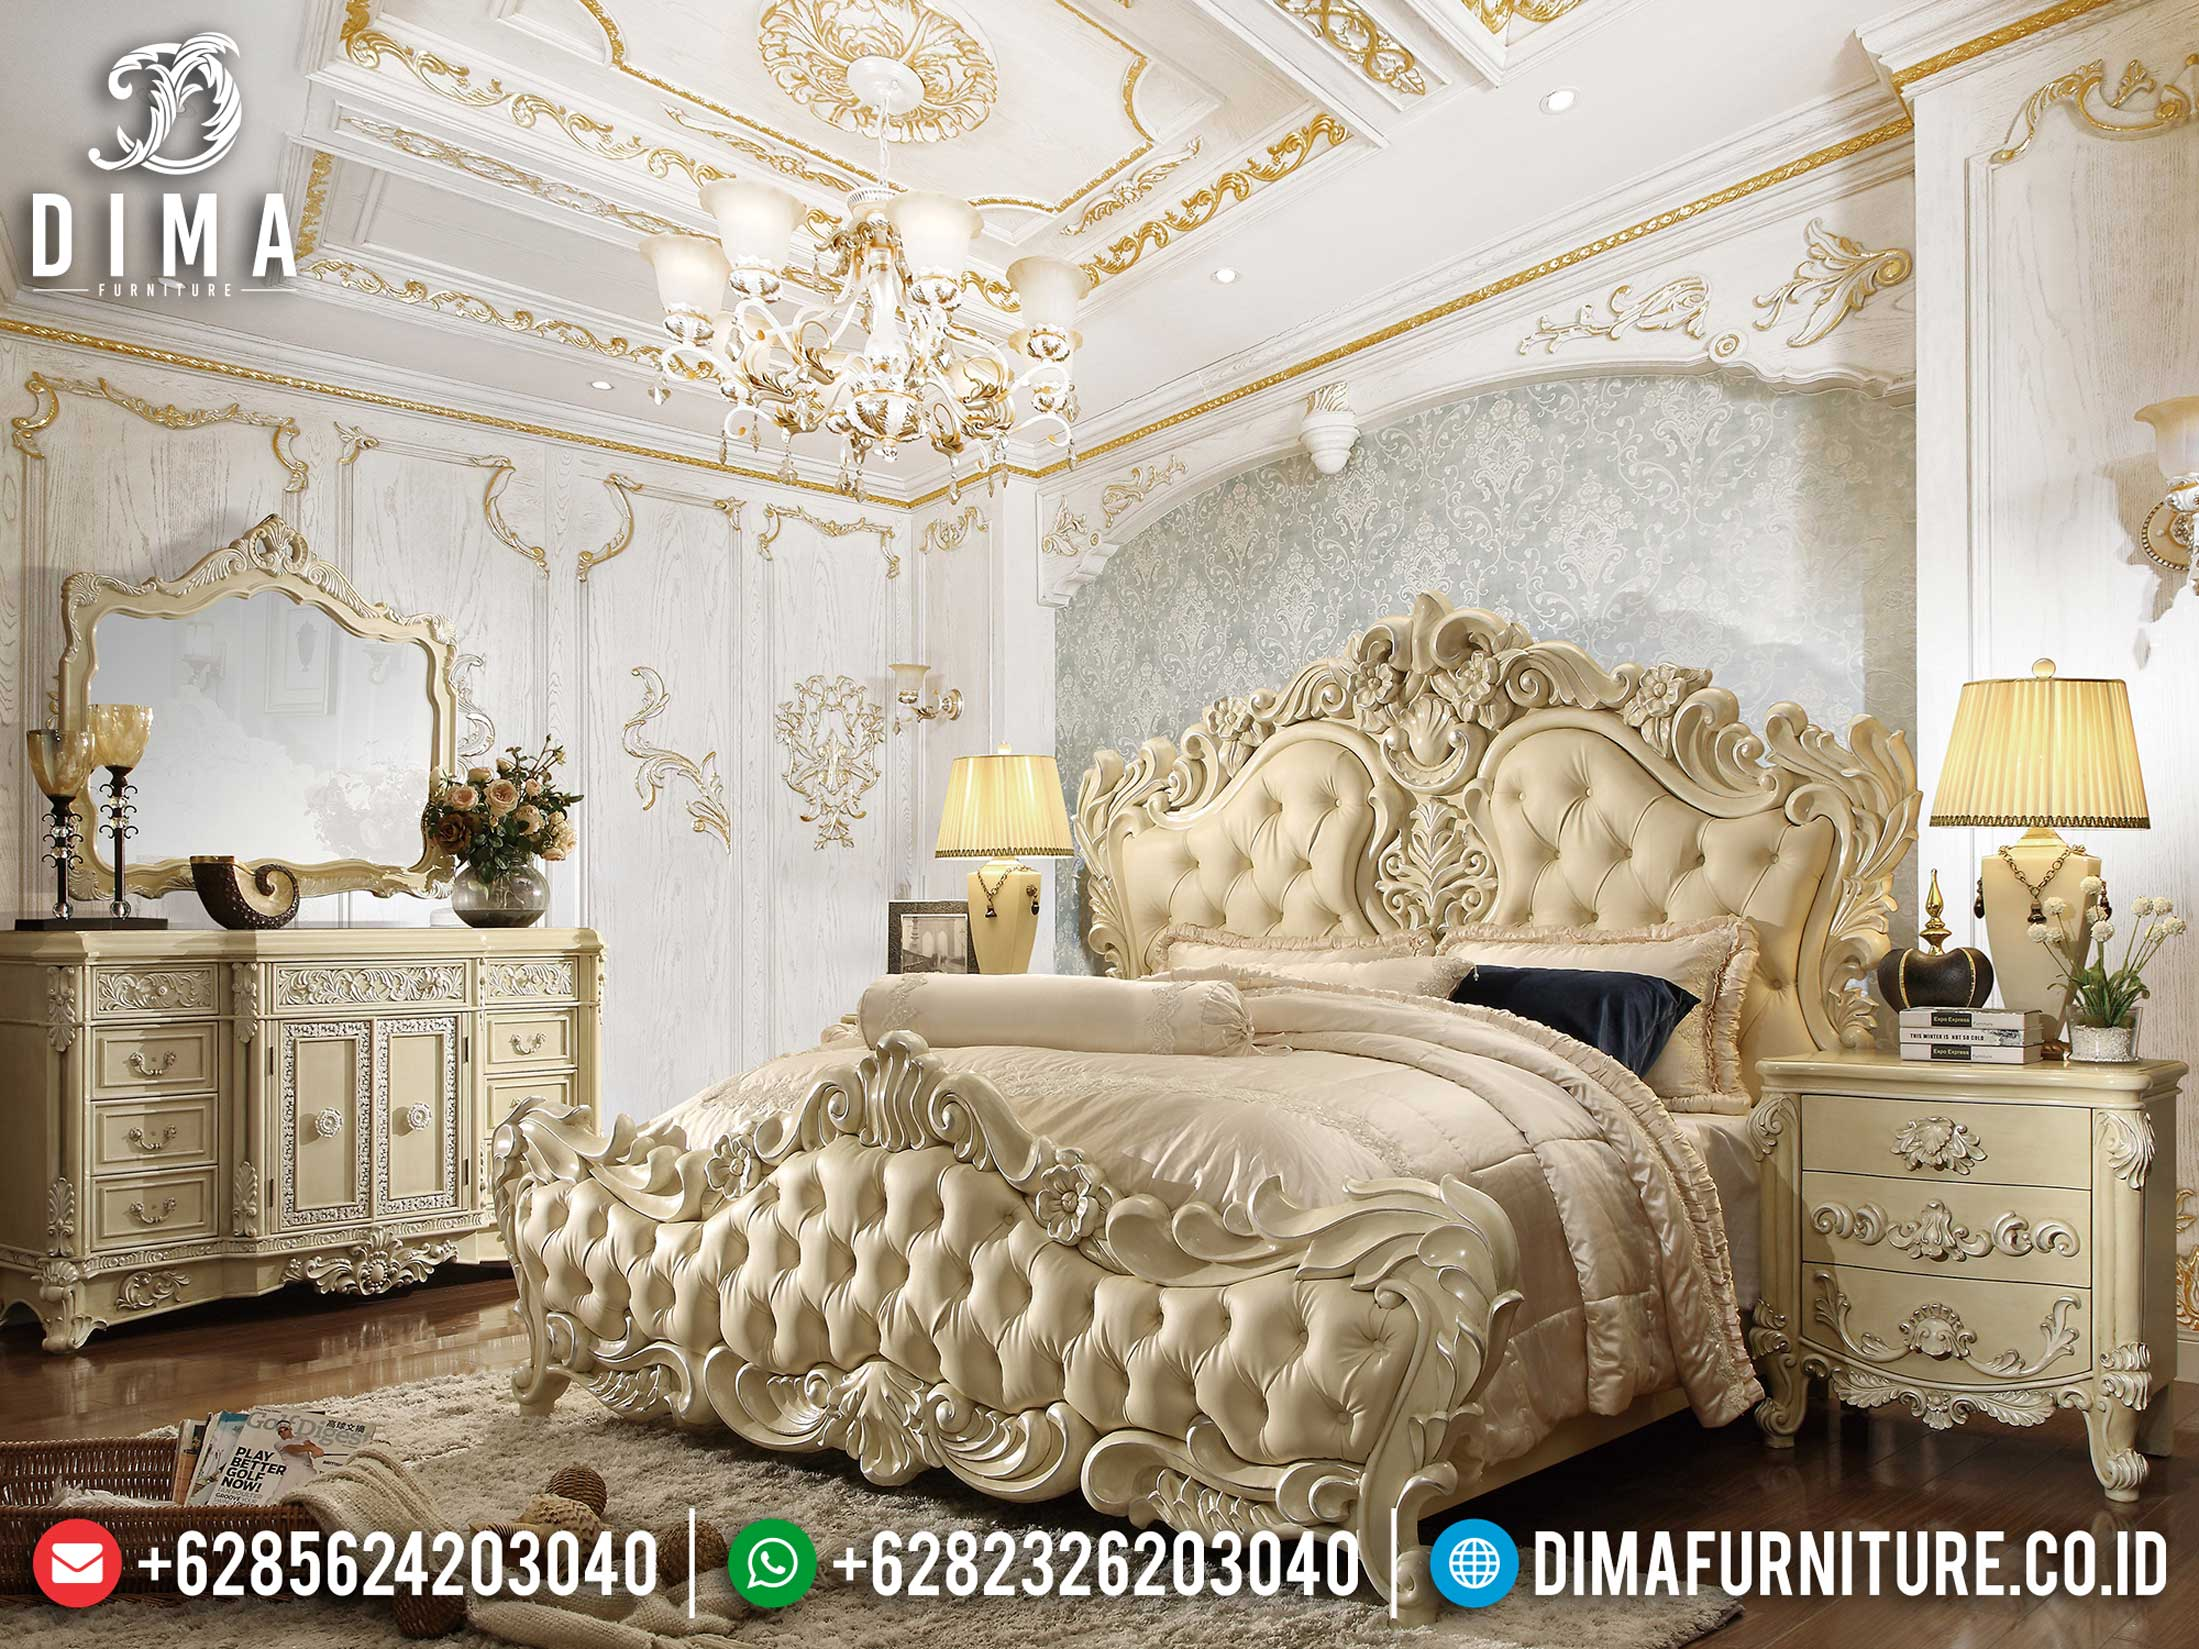 Hilarious Kamar Set Mewah Deluxe Luxury Carving Furniture Jepara Terbaru TTJ-1150